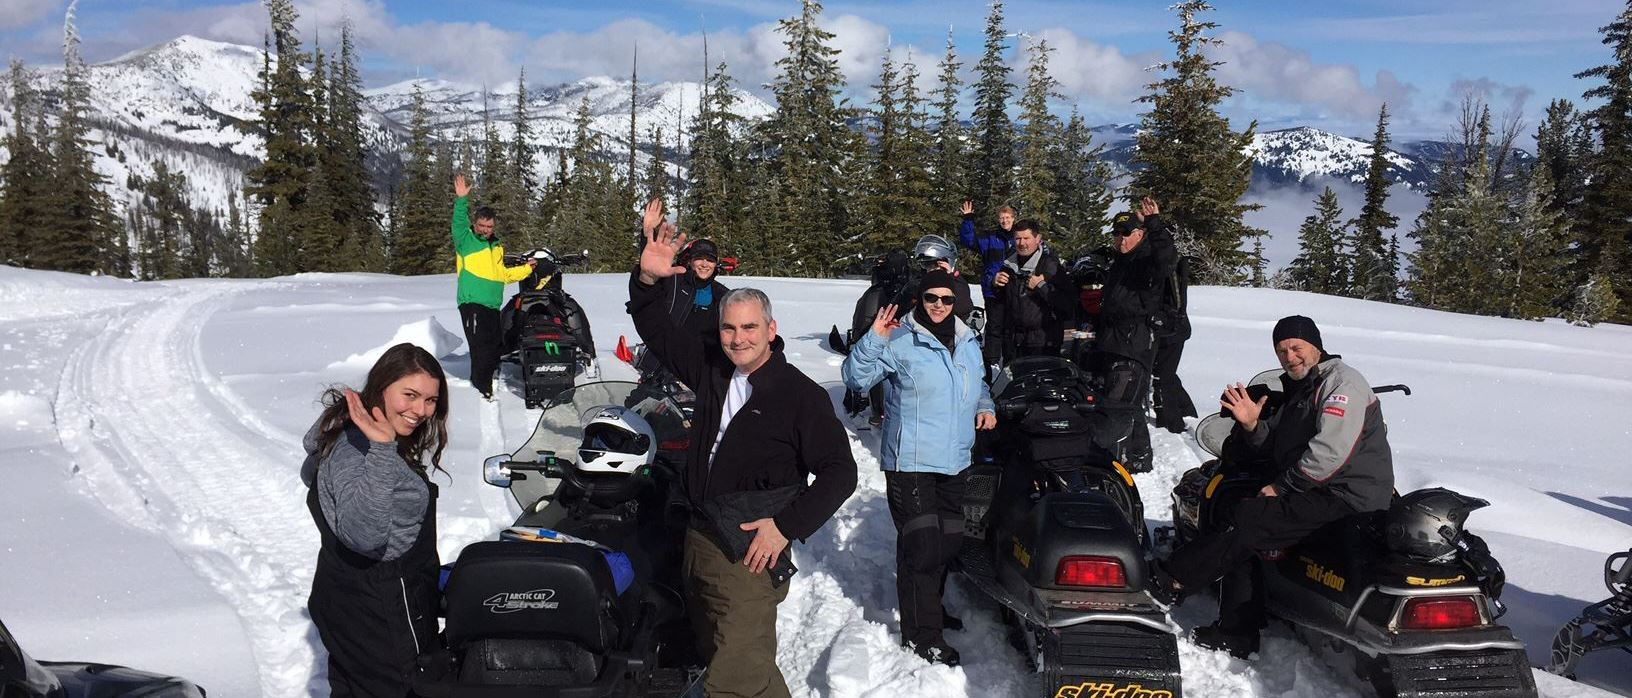 A group of snowmobilers waves from the top of a snow-covered peak near Marble Mountain